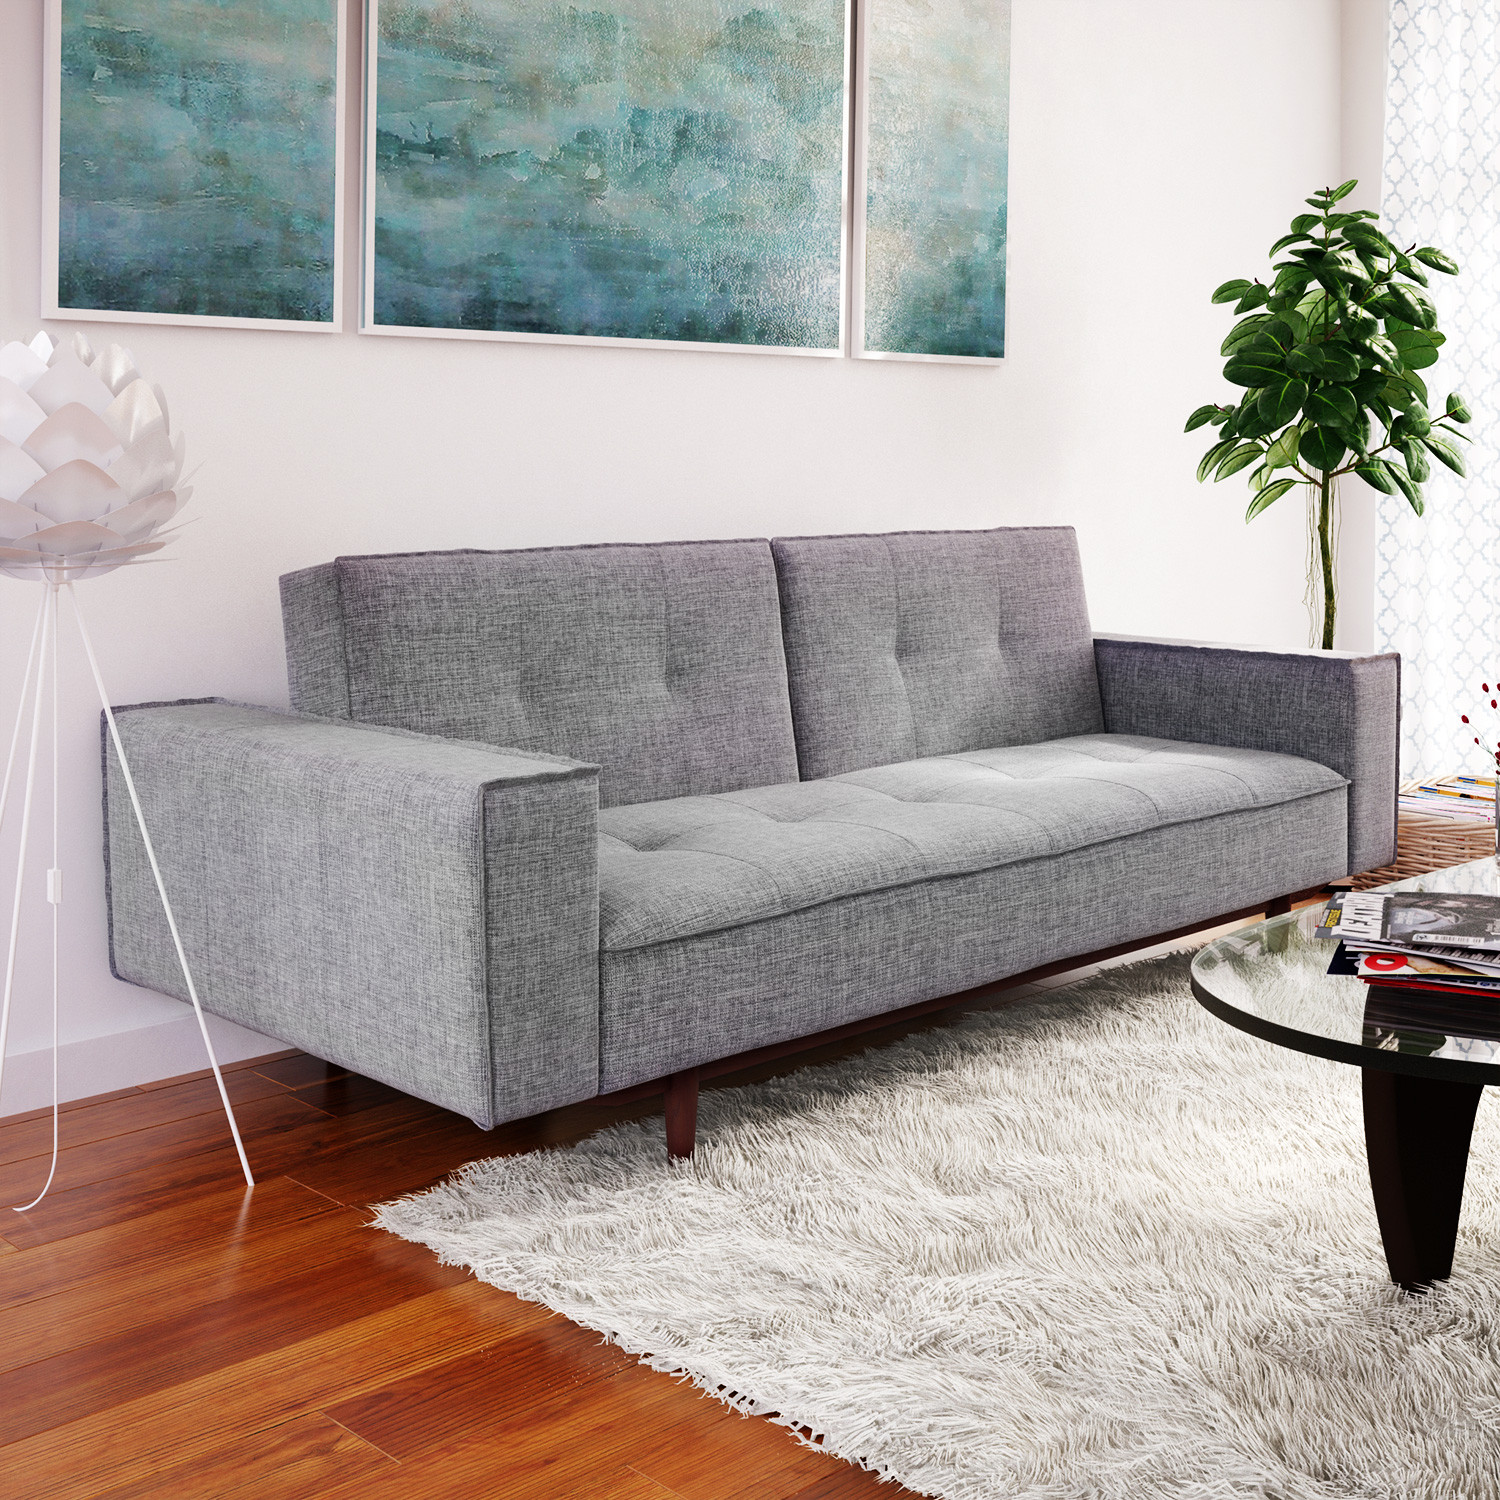 Contemporary Living Room Benches Elegant Modern & Contemporary Living Room Furniture